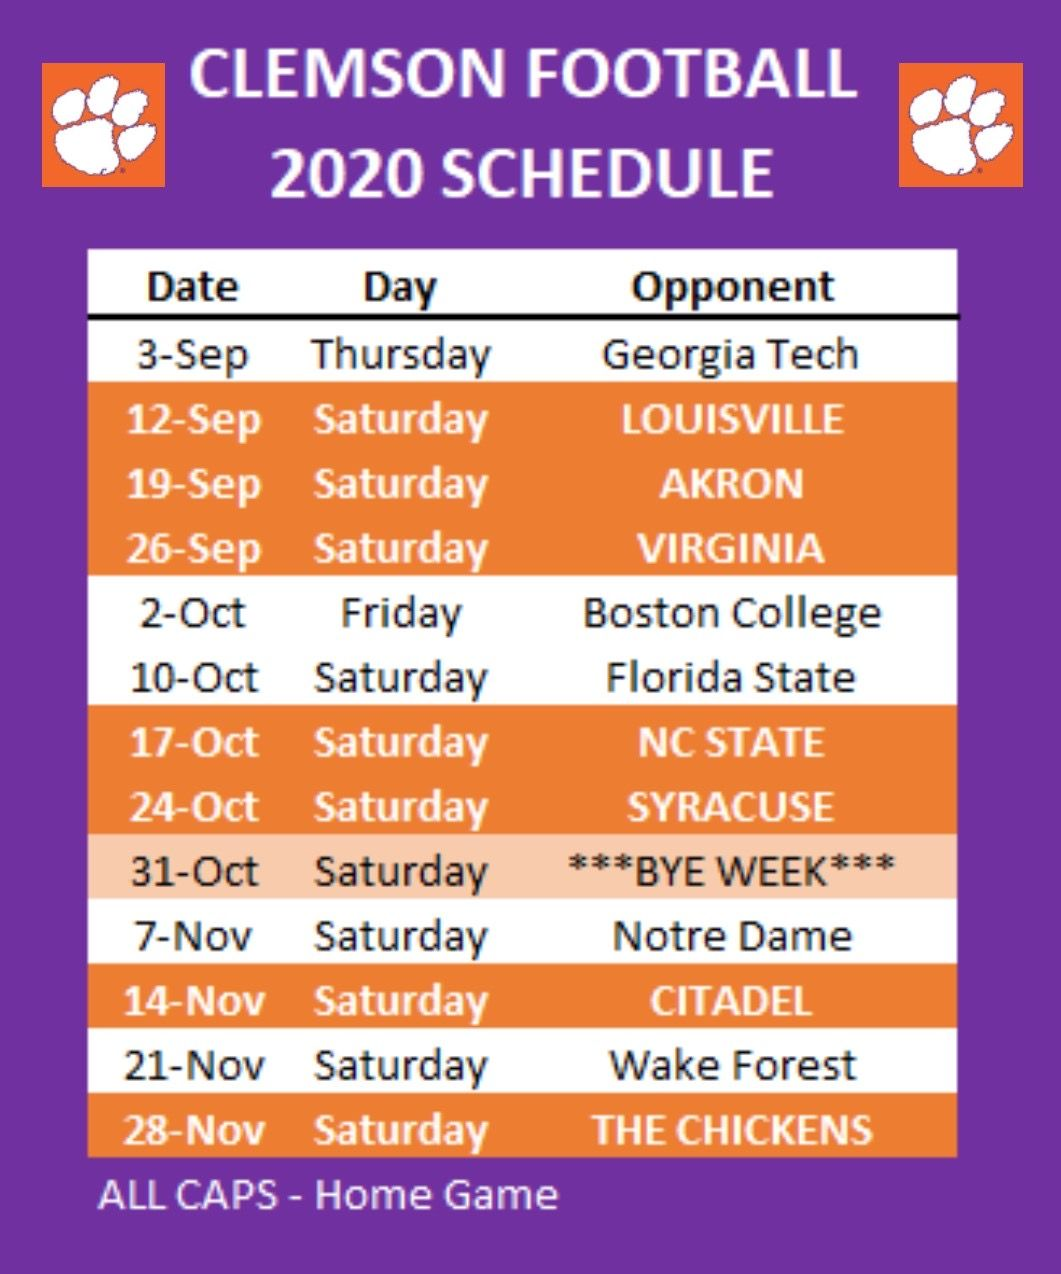 Clemson Football 2020 Schedule in 2020 Clemson